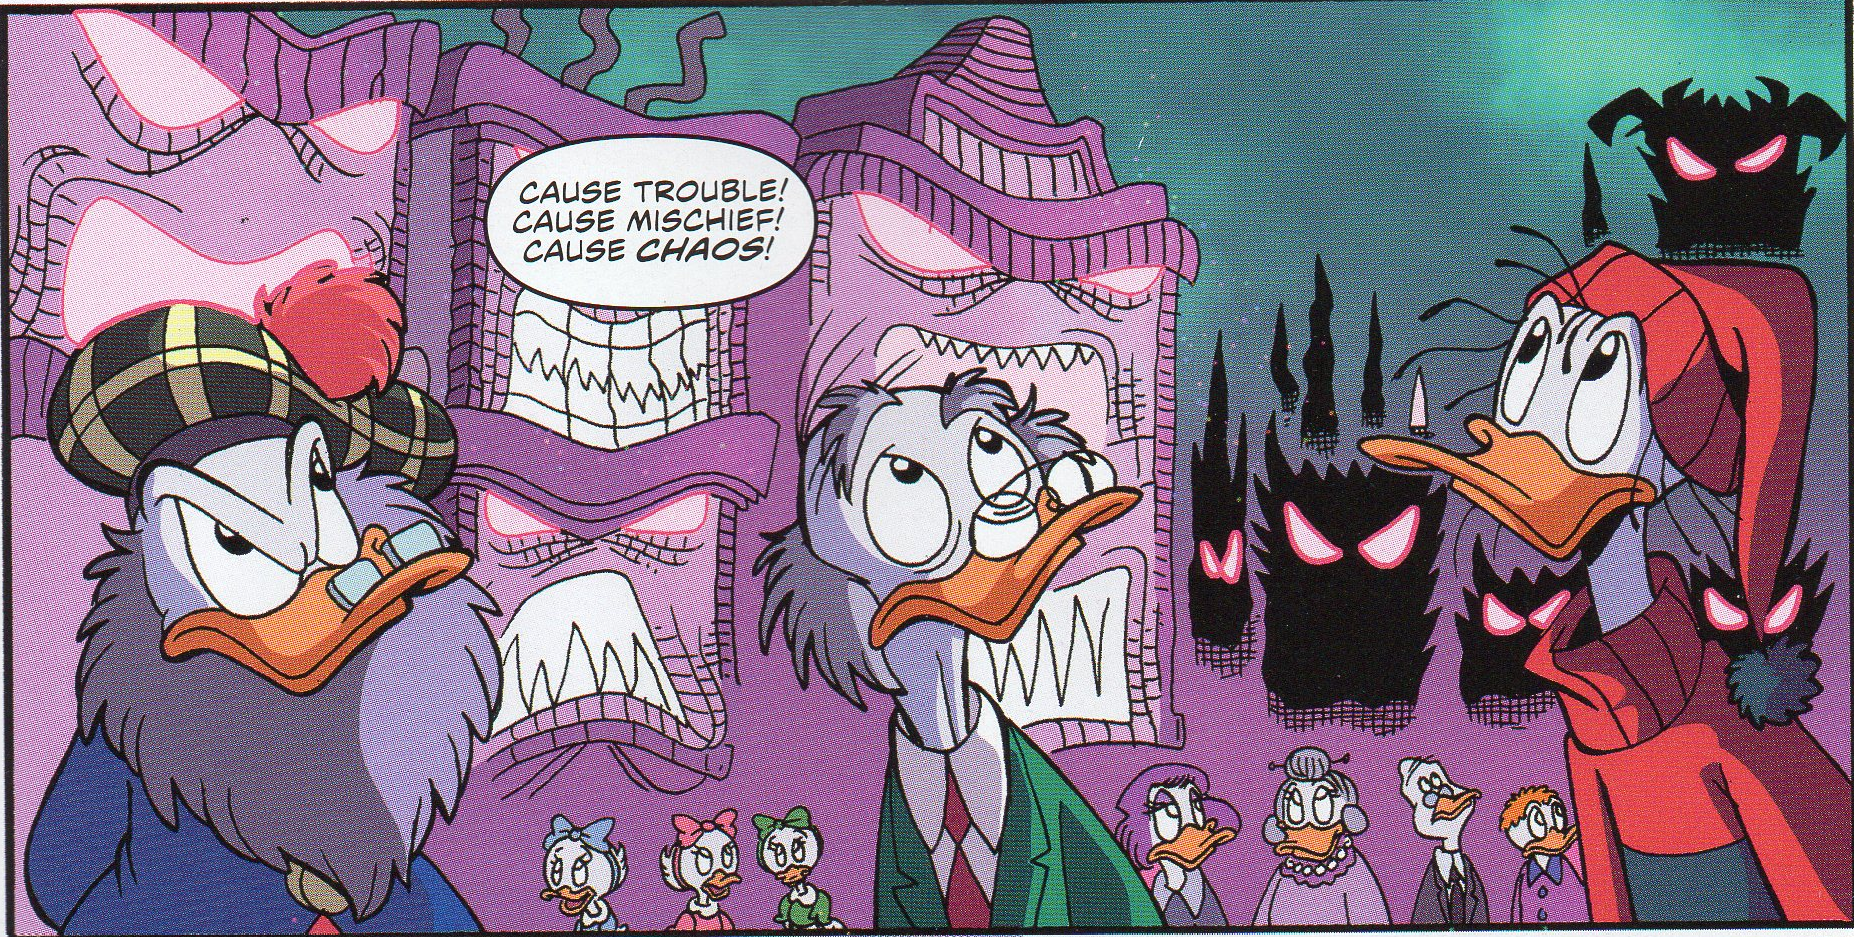 http://vignette3.wikia.nocookie.net/disney/images/e/ea/FethryGlomgoldLudwig.png/revision/latest?cb=20130715234654